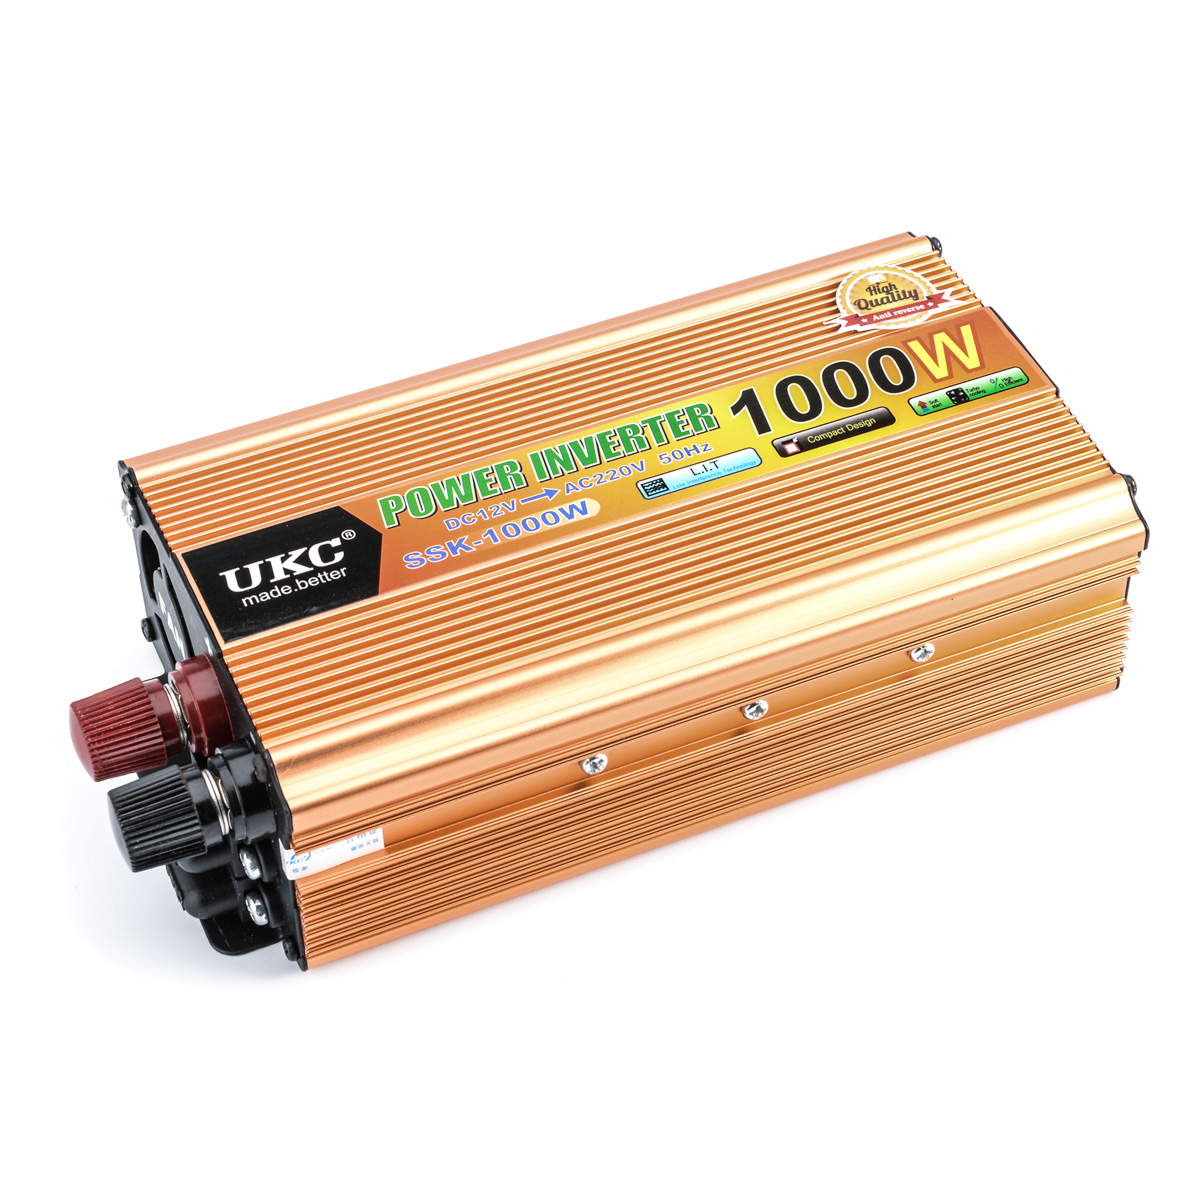 Car inverter 1000W DC 12 v to AC 220 v vehicle power supply switch on-board charger car inverter YA176(China (Mainland))